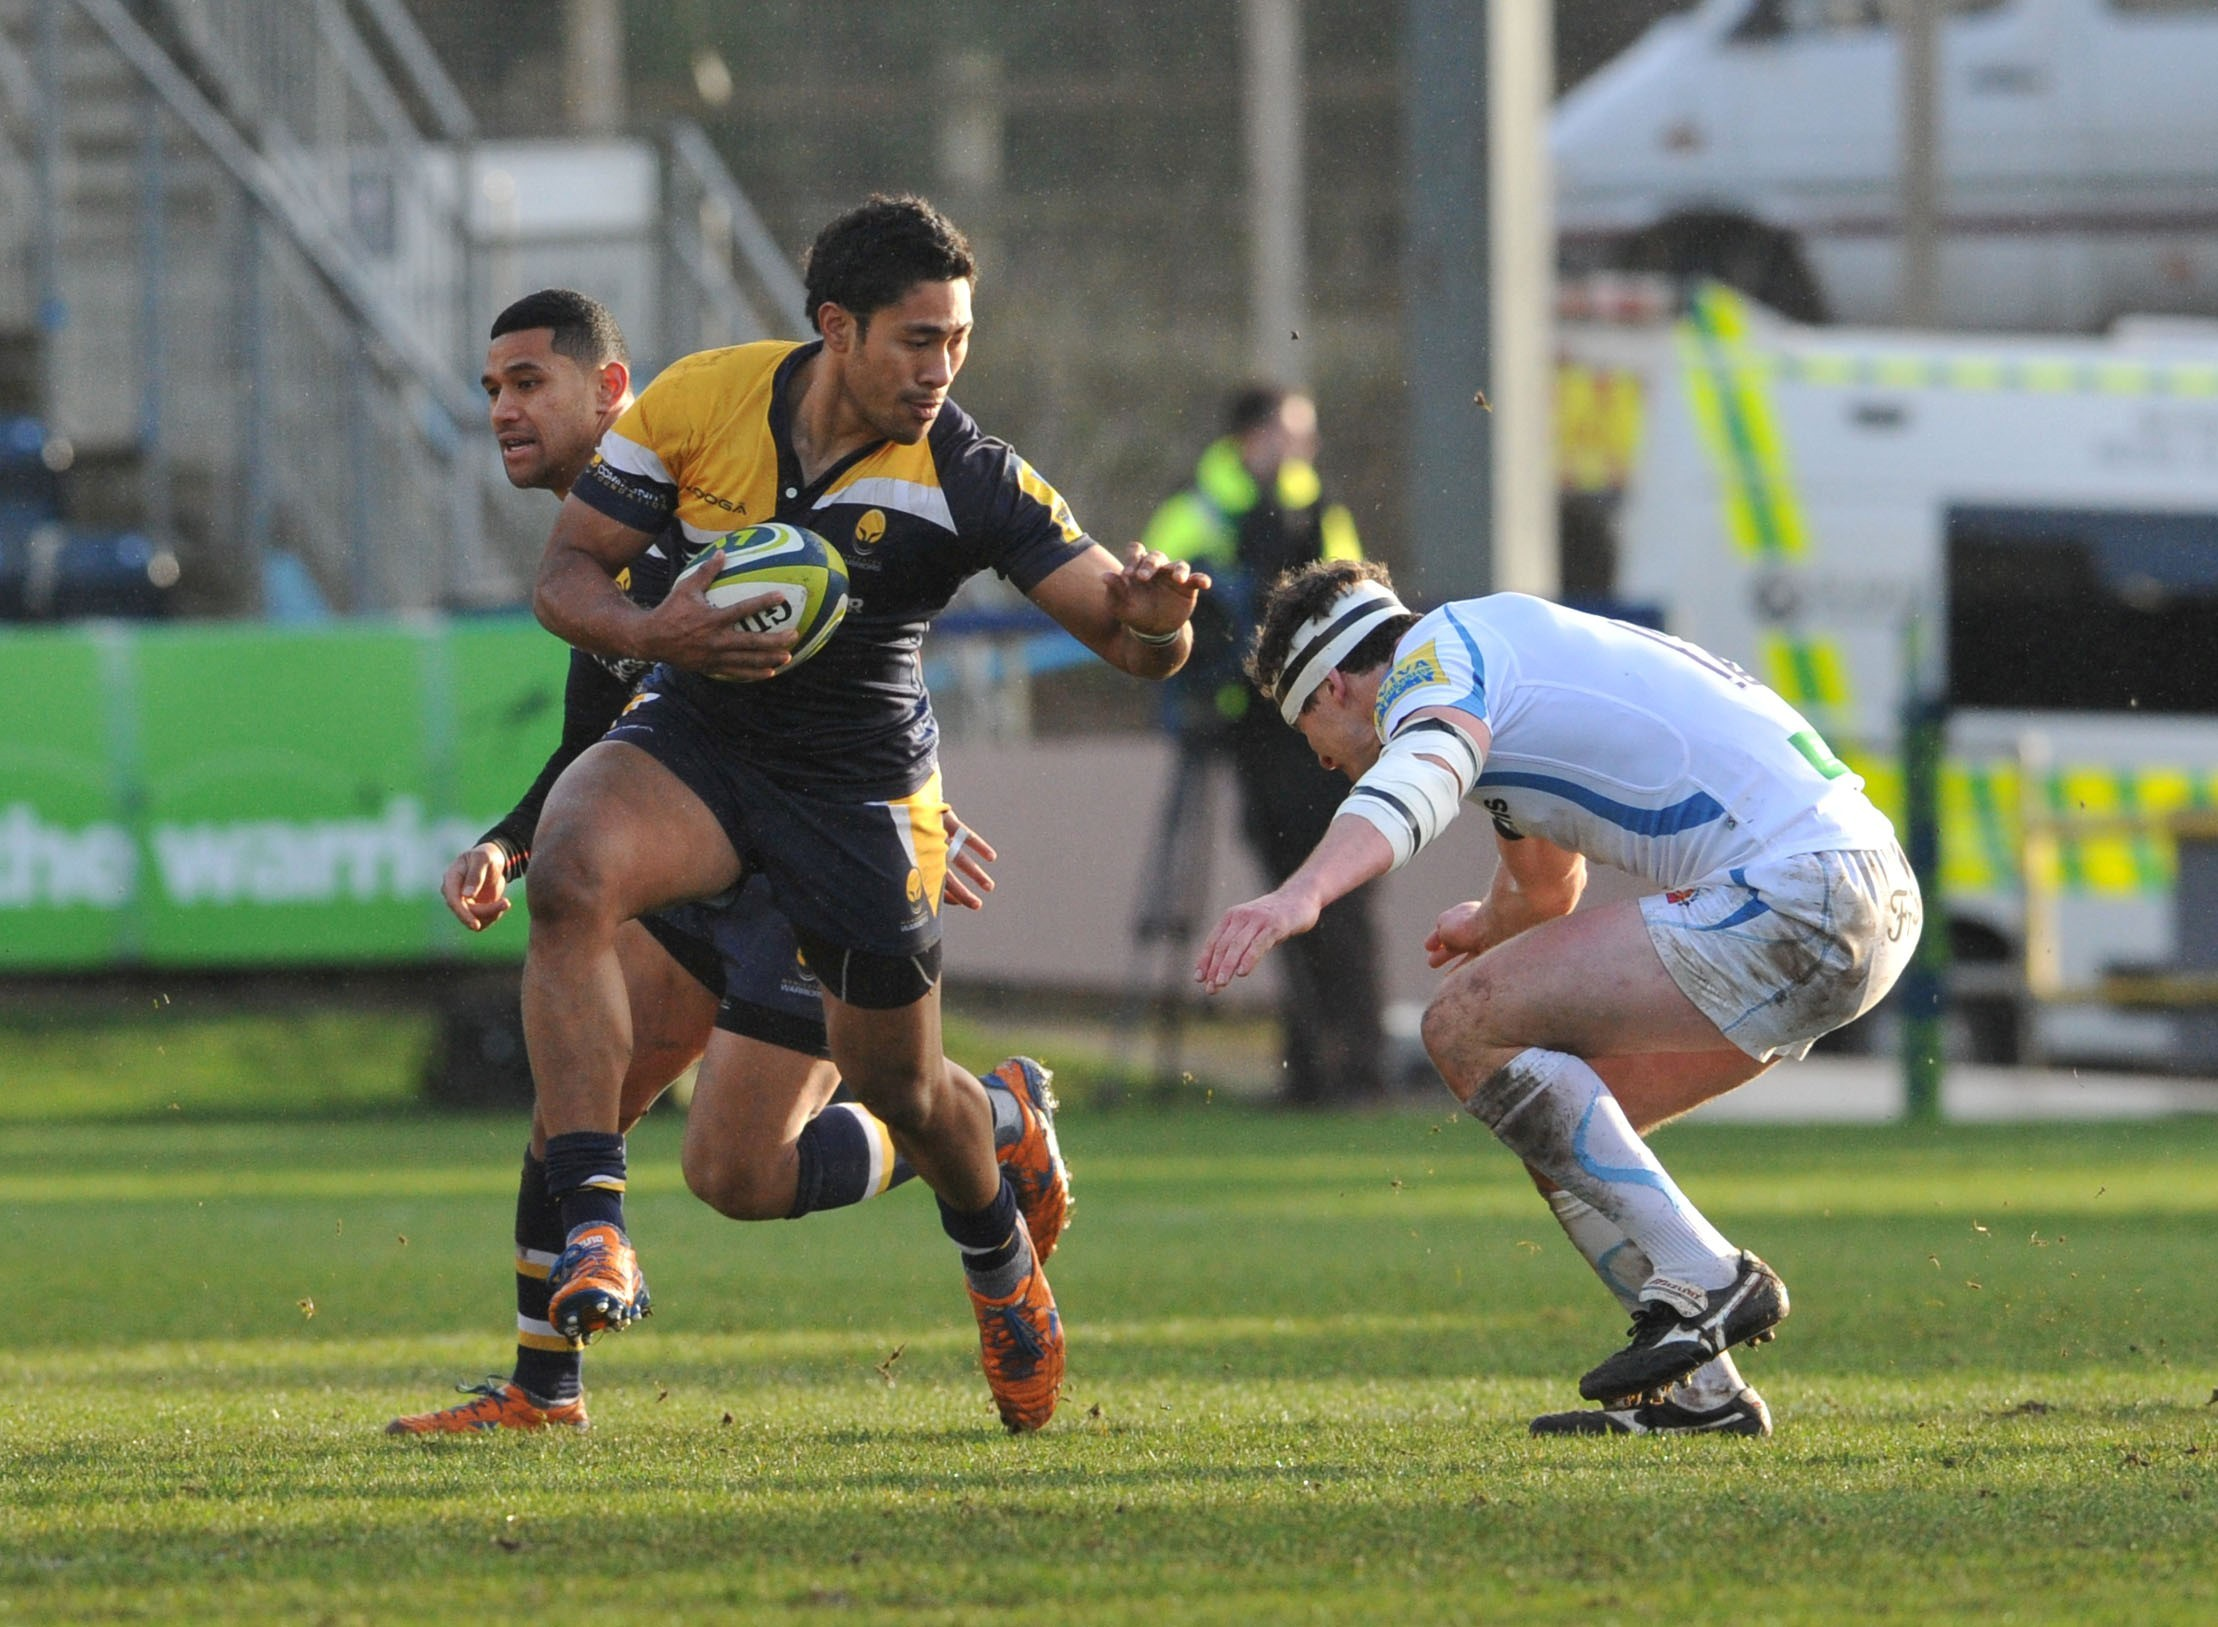 Exeter bullied us, moans Warriors boss